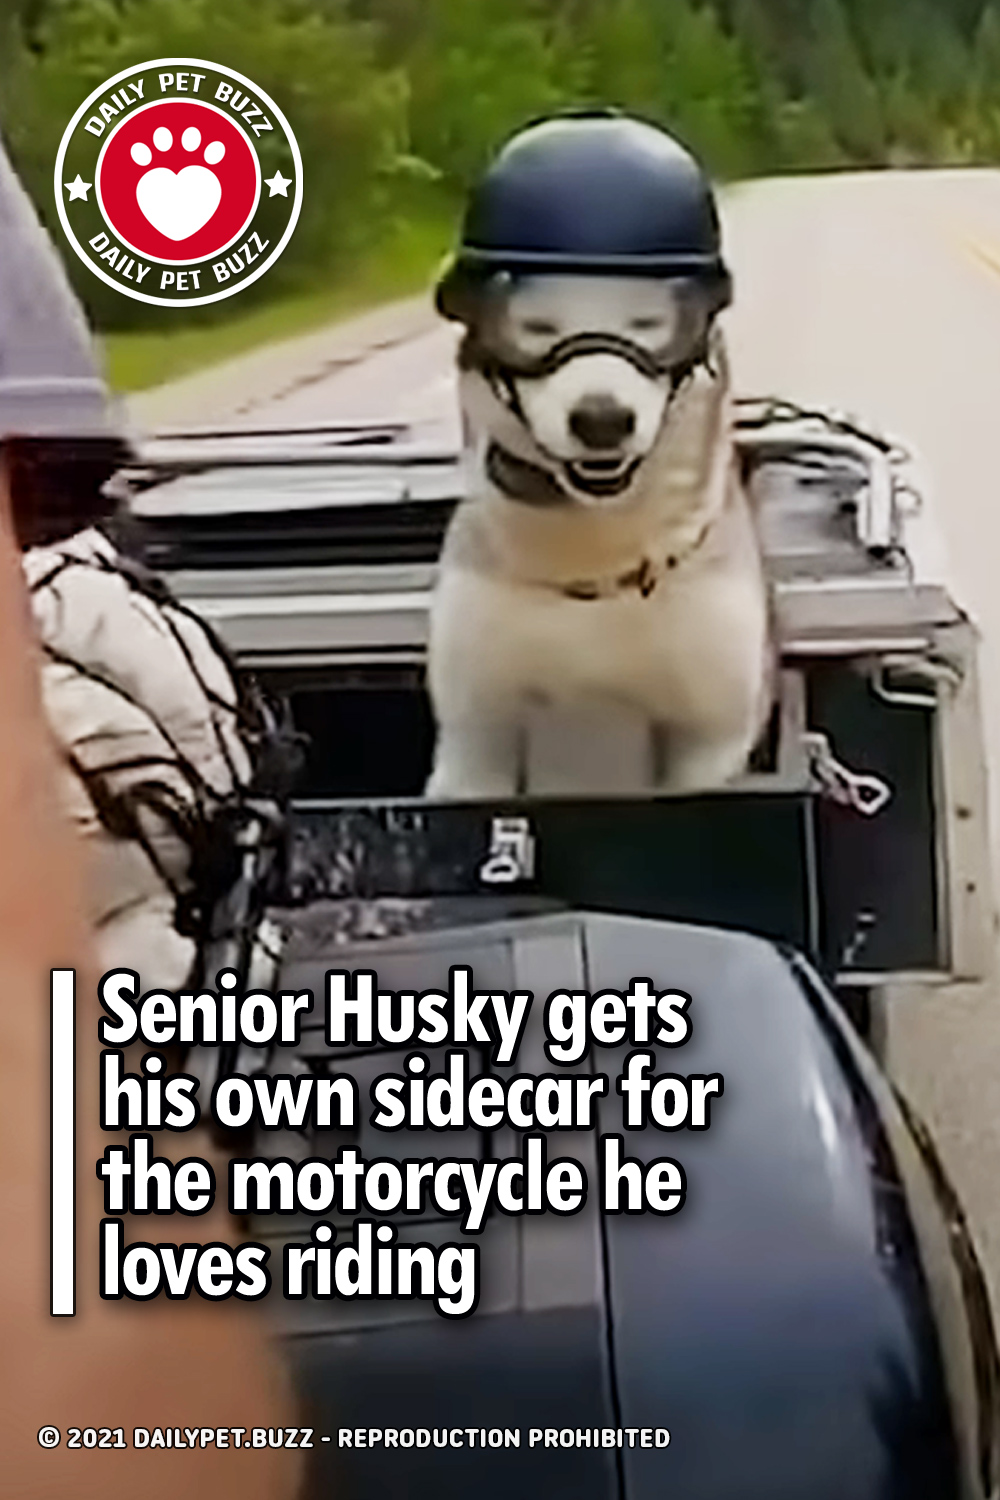 Senior Husky gets his own sidecar for the motorcycle he loves riding